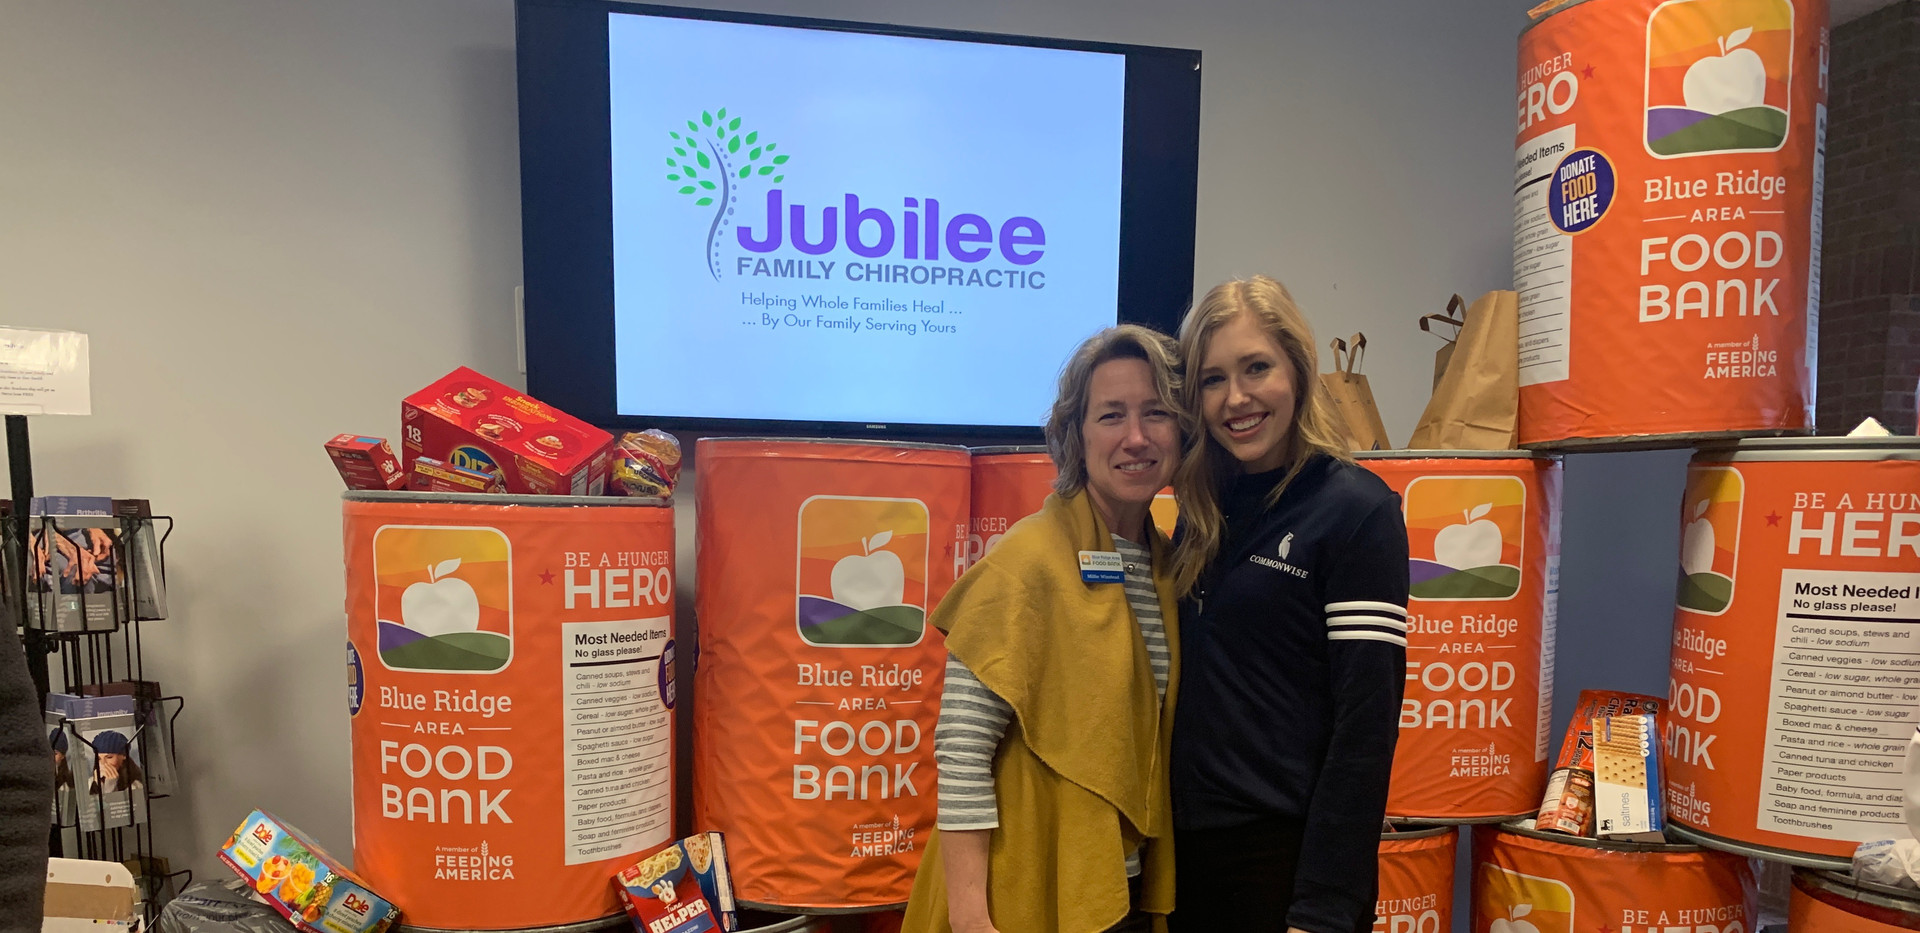 Jubilee Family Chiropractic 2020 Blue Ridge Food Drive. 040